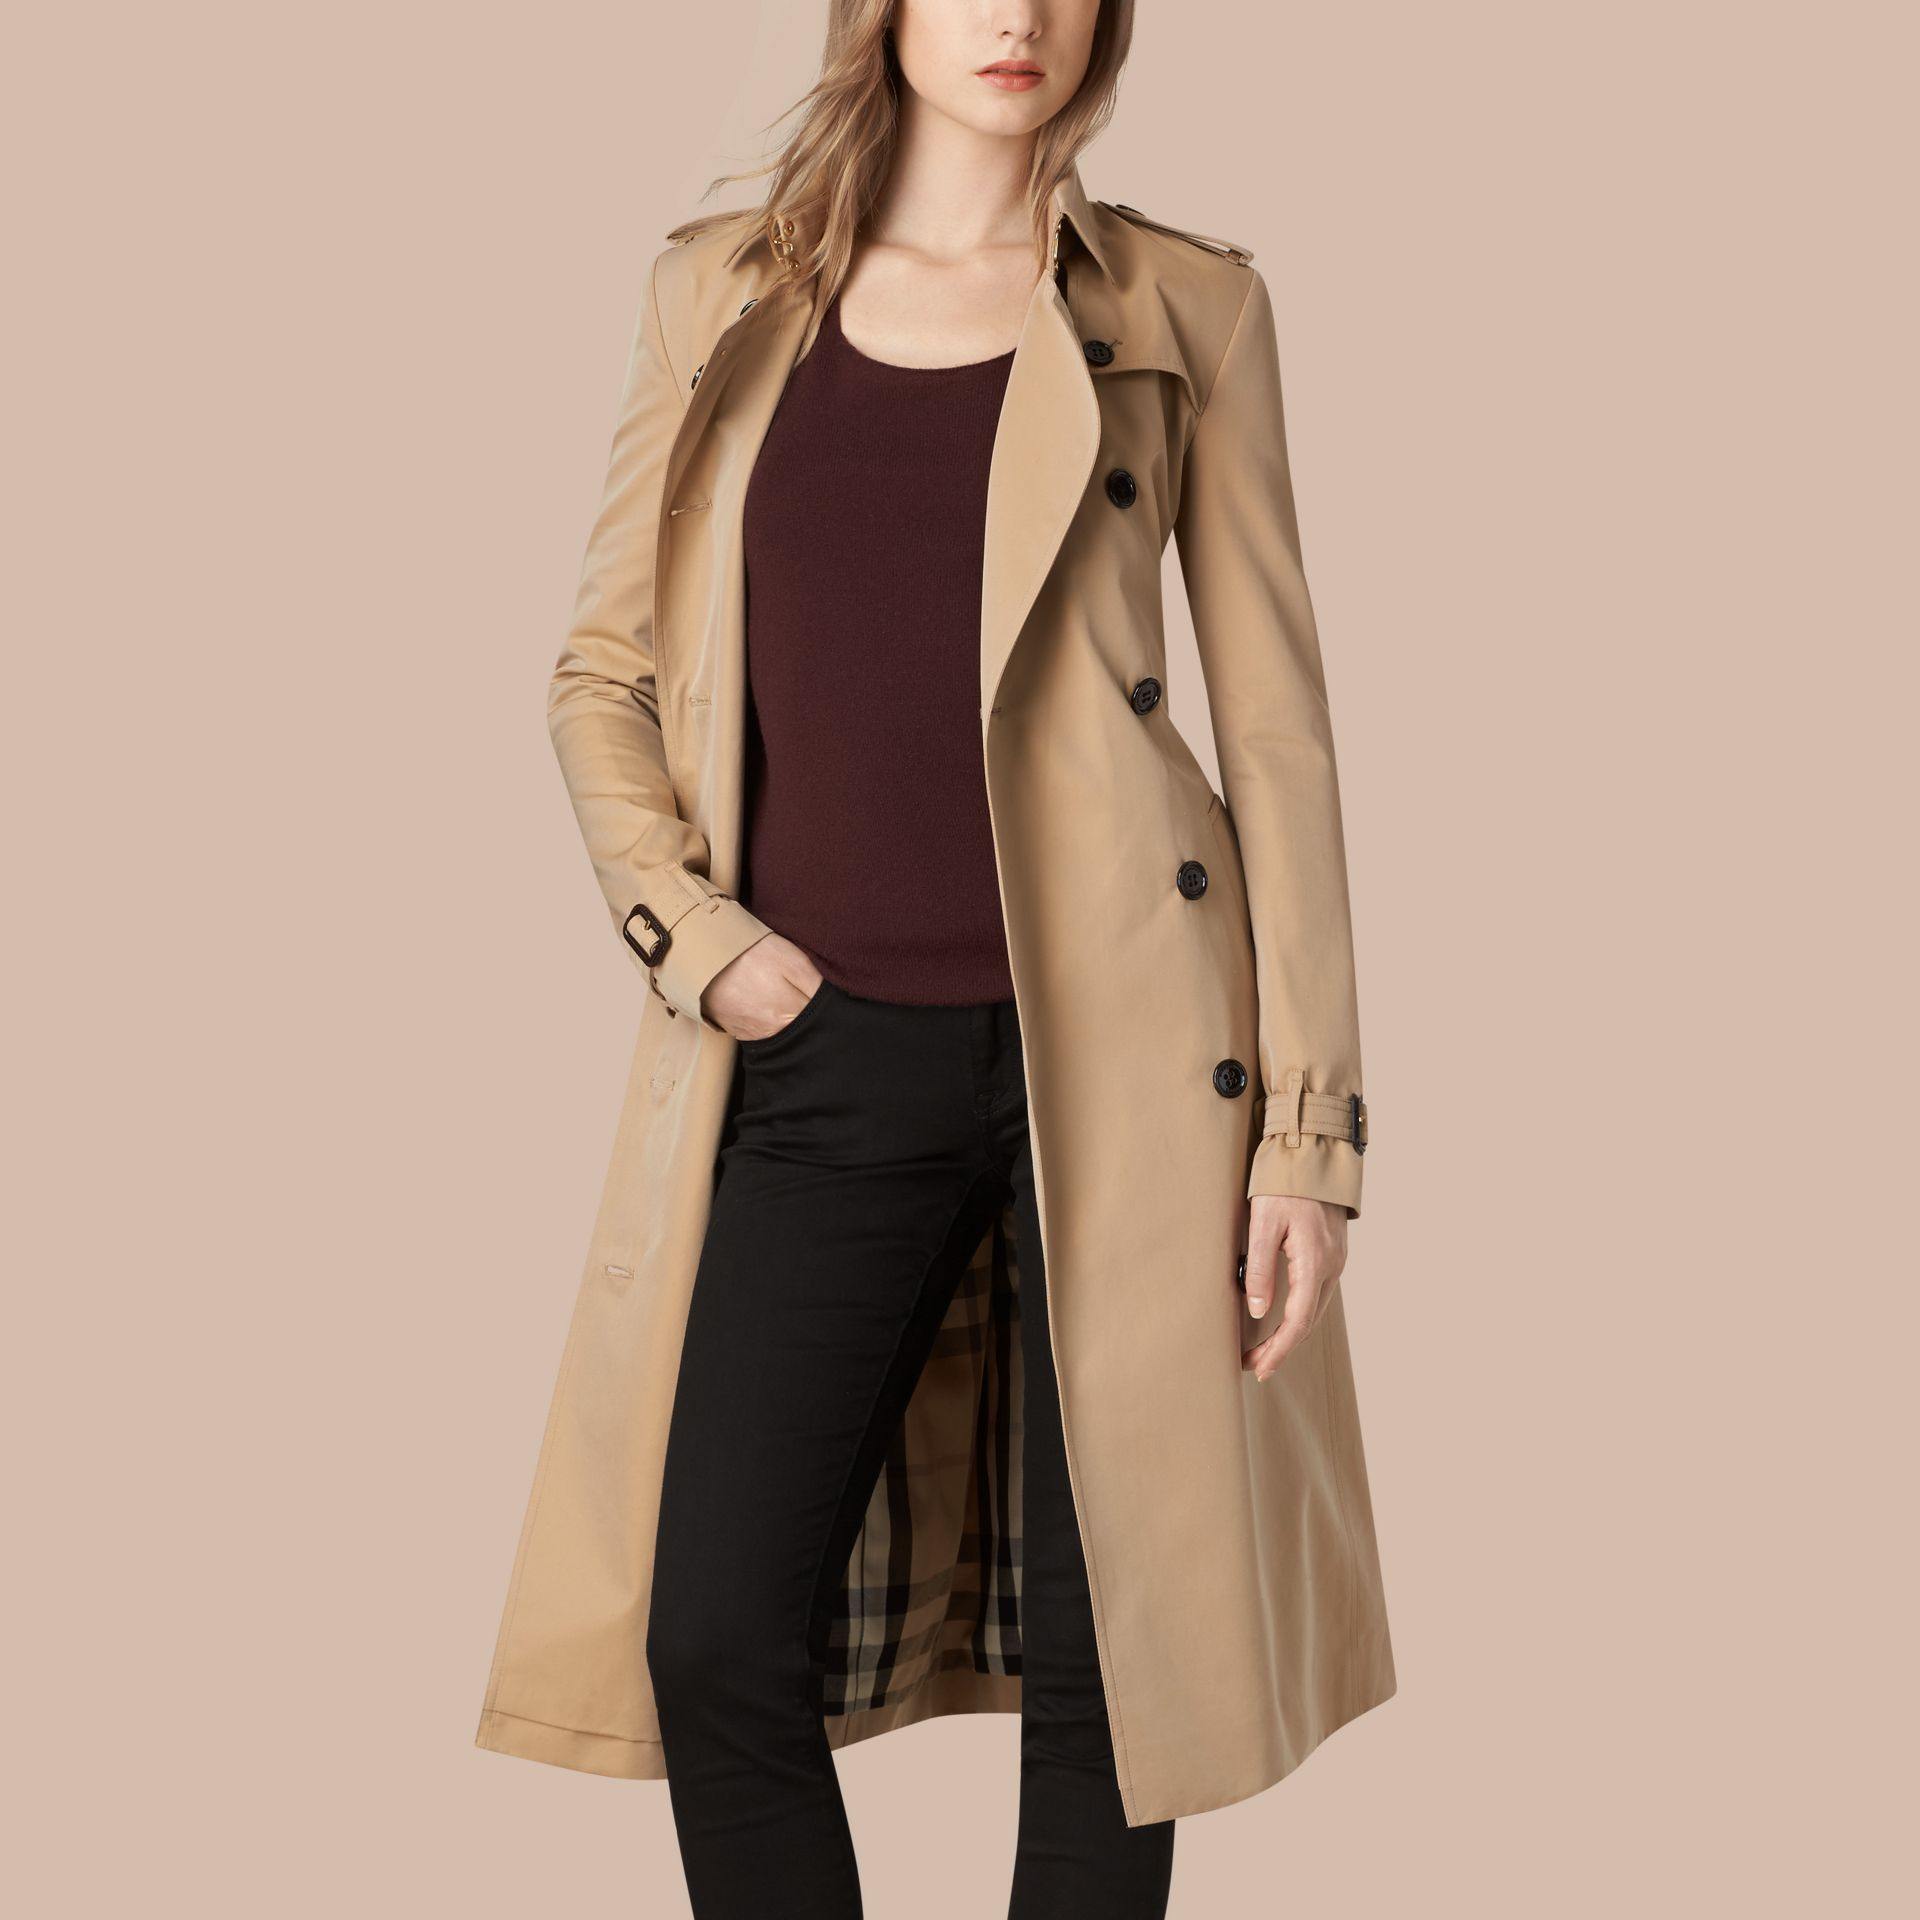 Cotton Gabardine Trench Coat - Women | Burberry Hong Kong - gallery image 2